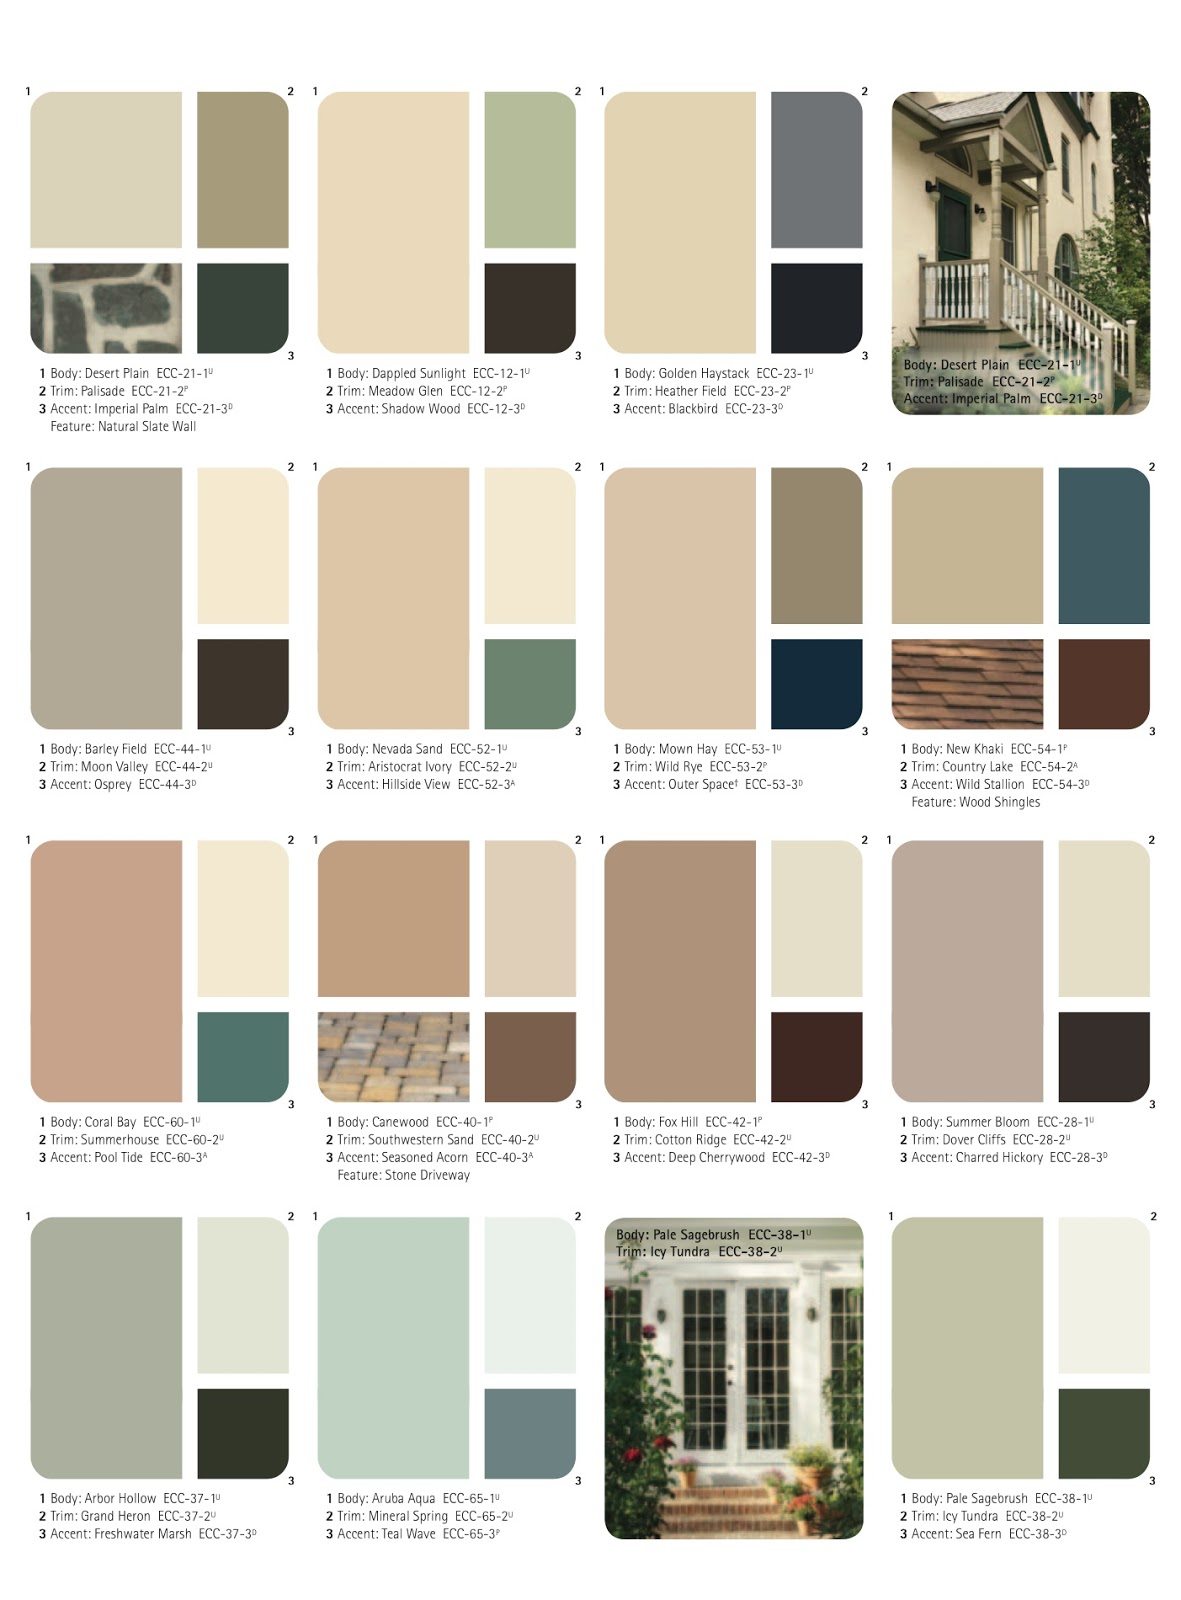 Home depot house paint home painting ideas for Paint colors exterior house